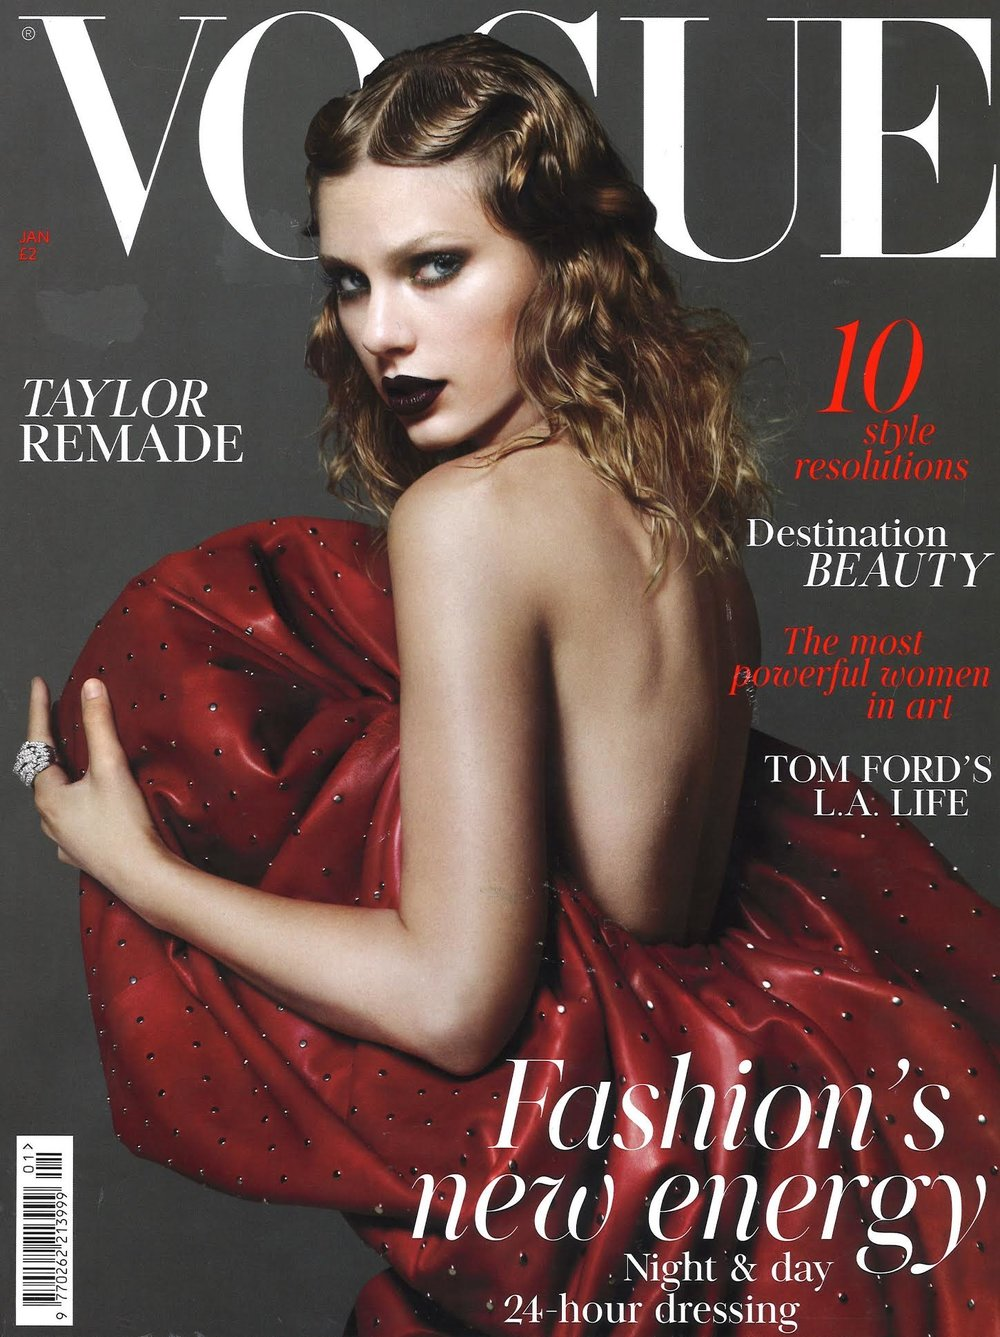 Vogue UK Cover